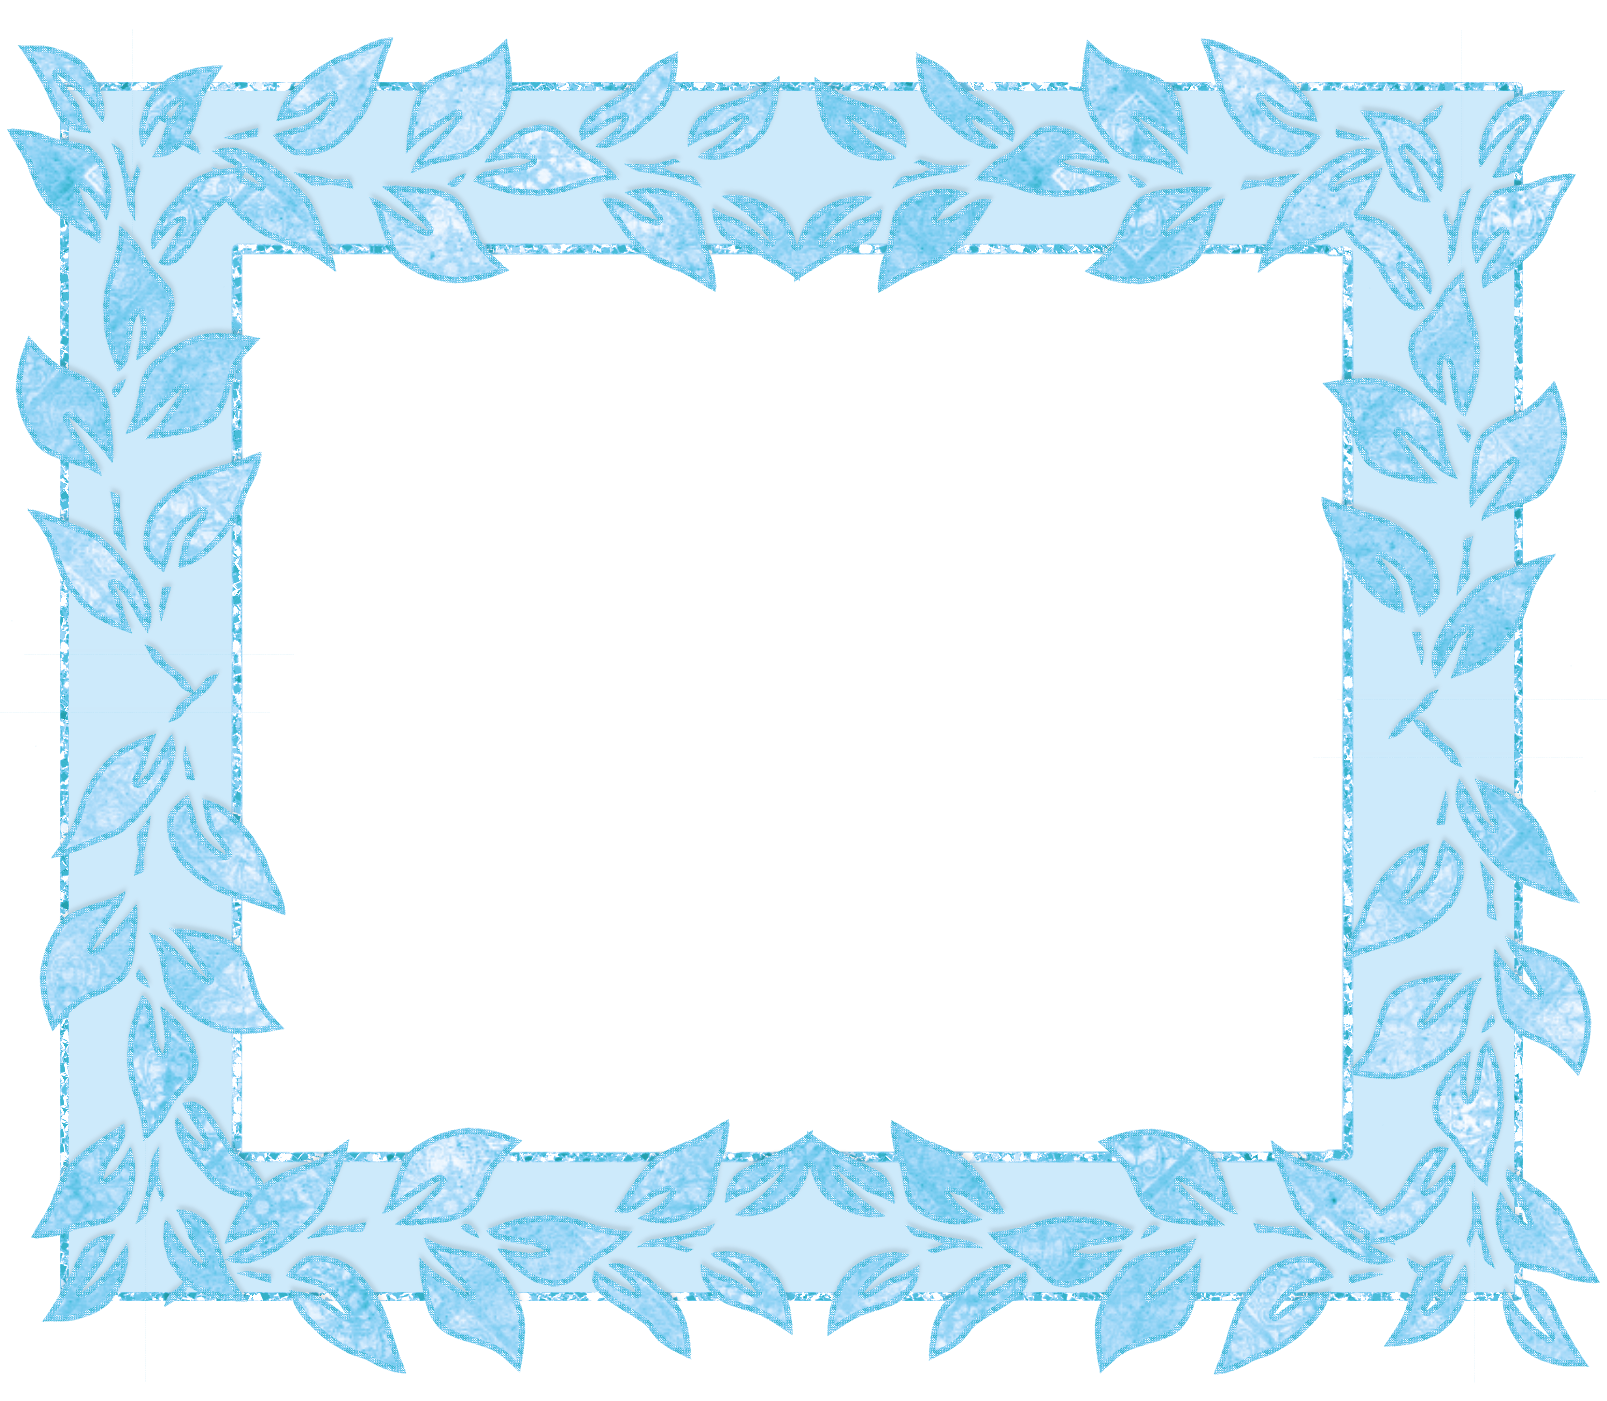 Transparent frame with leafs. Frames clipart blue